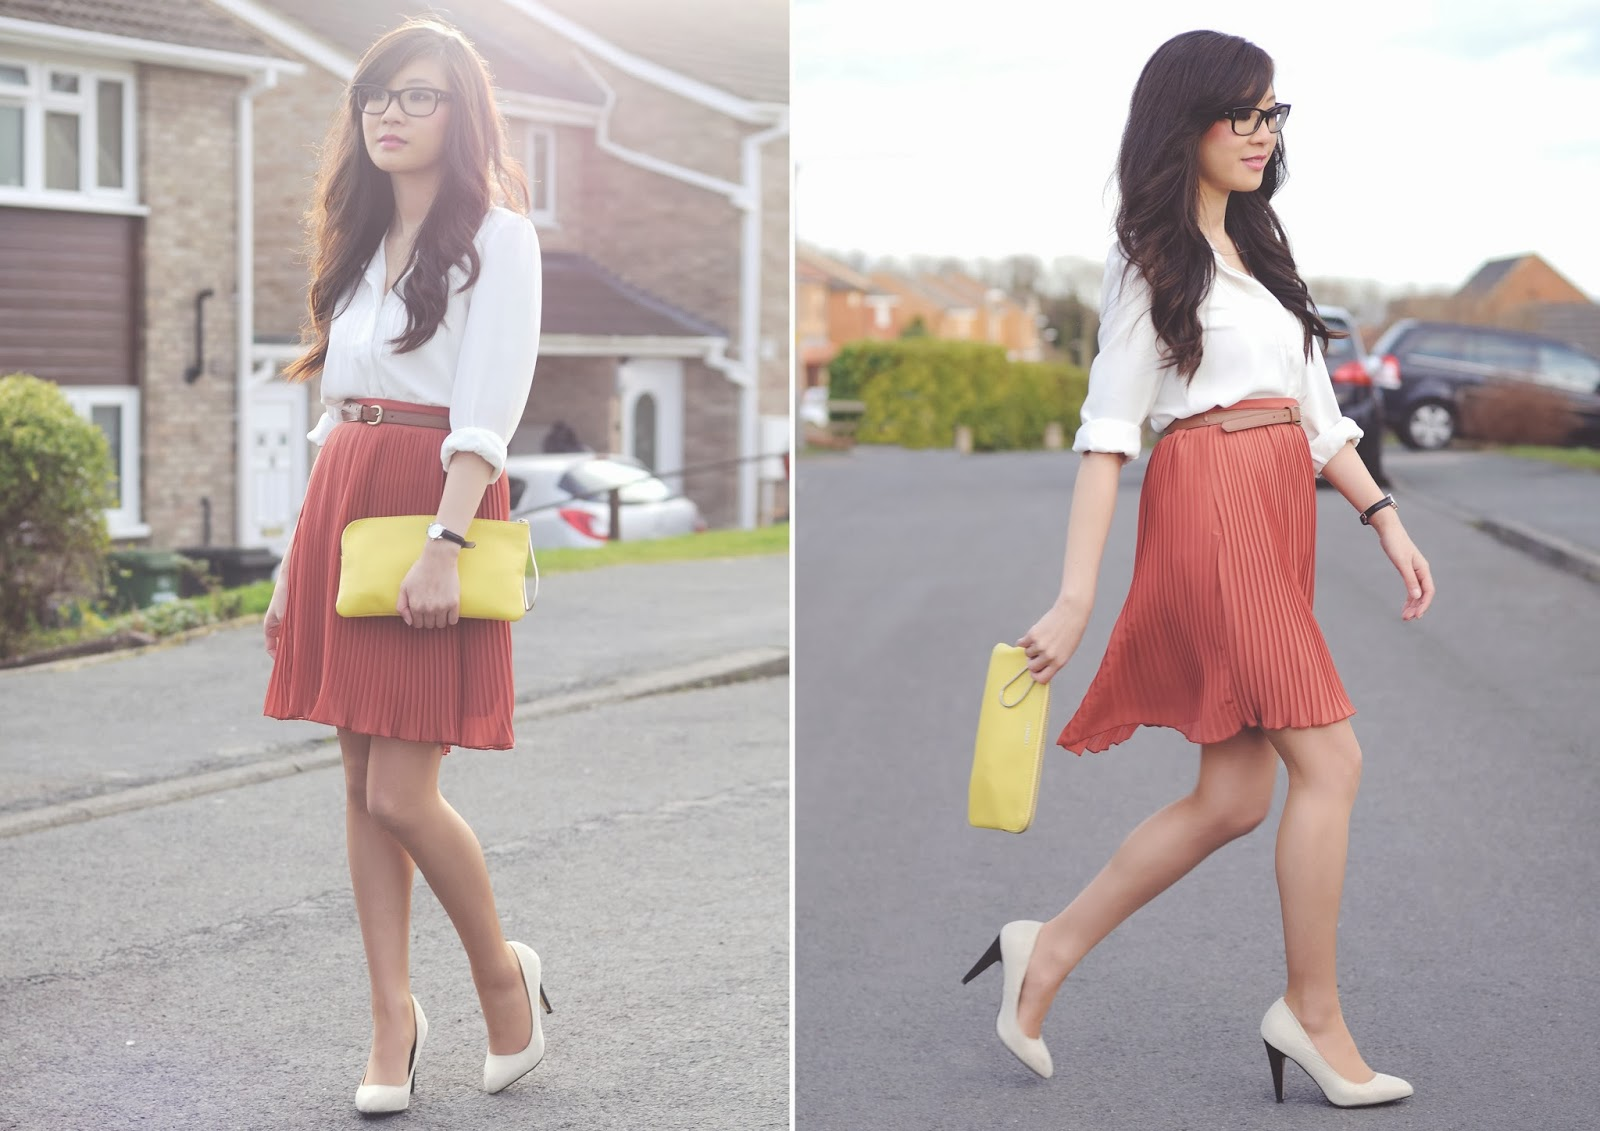 How to wear a midi skirt, what to wear with yellow clutch bag